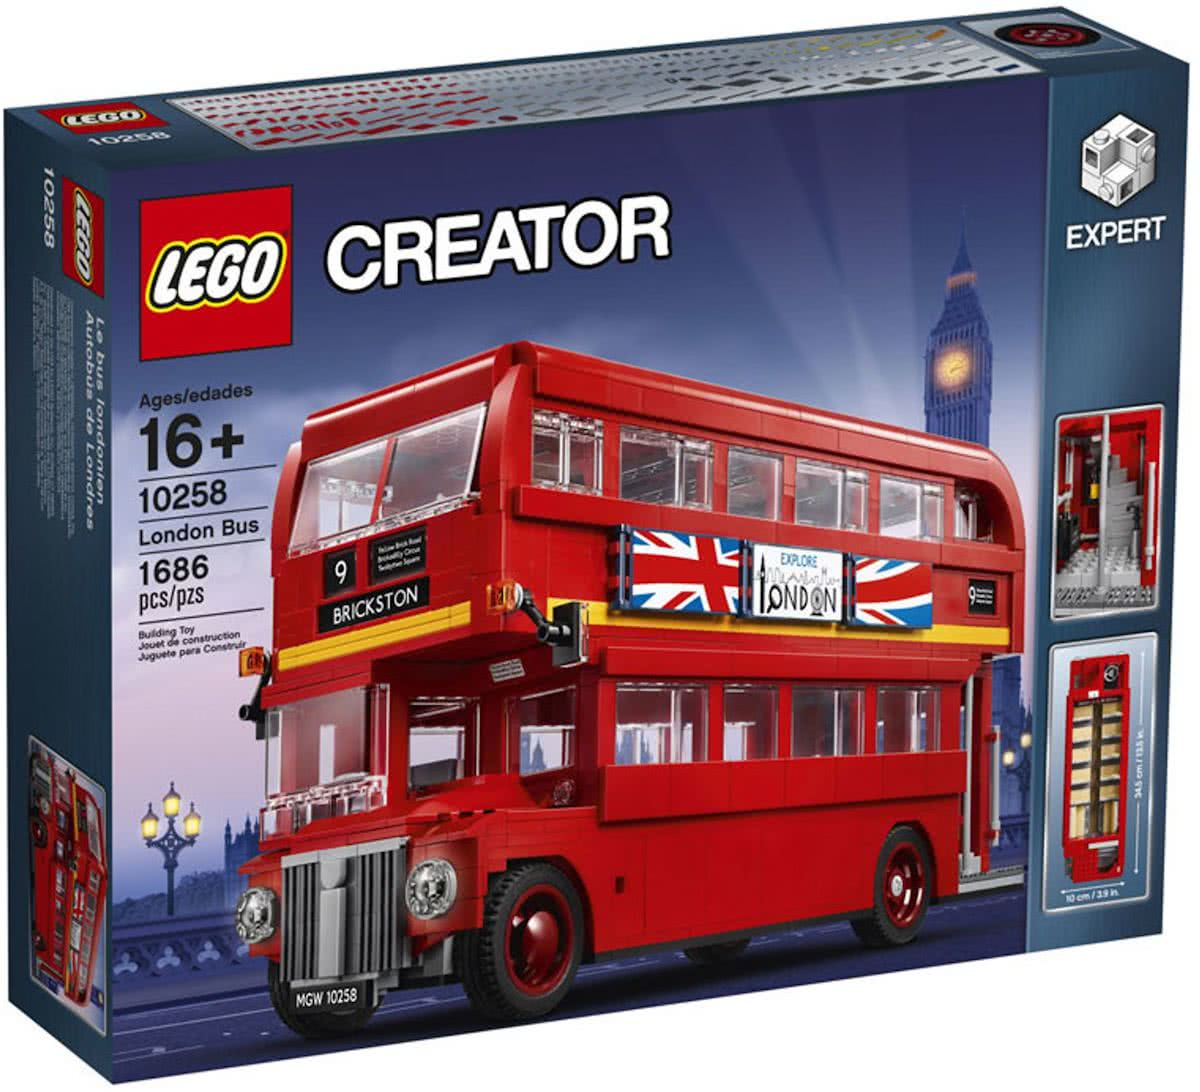 10258 LEGO Creator London Bus